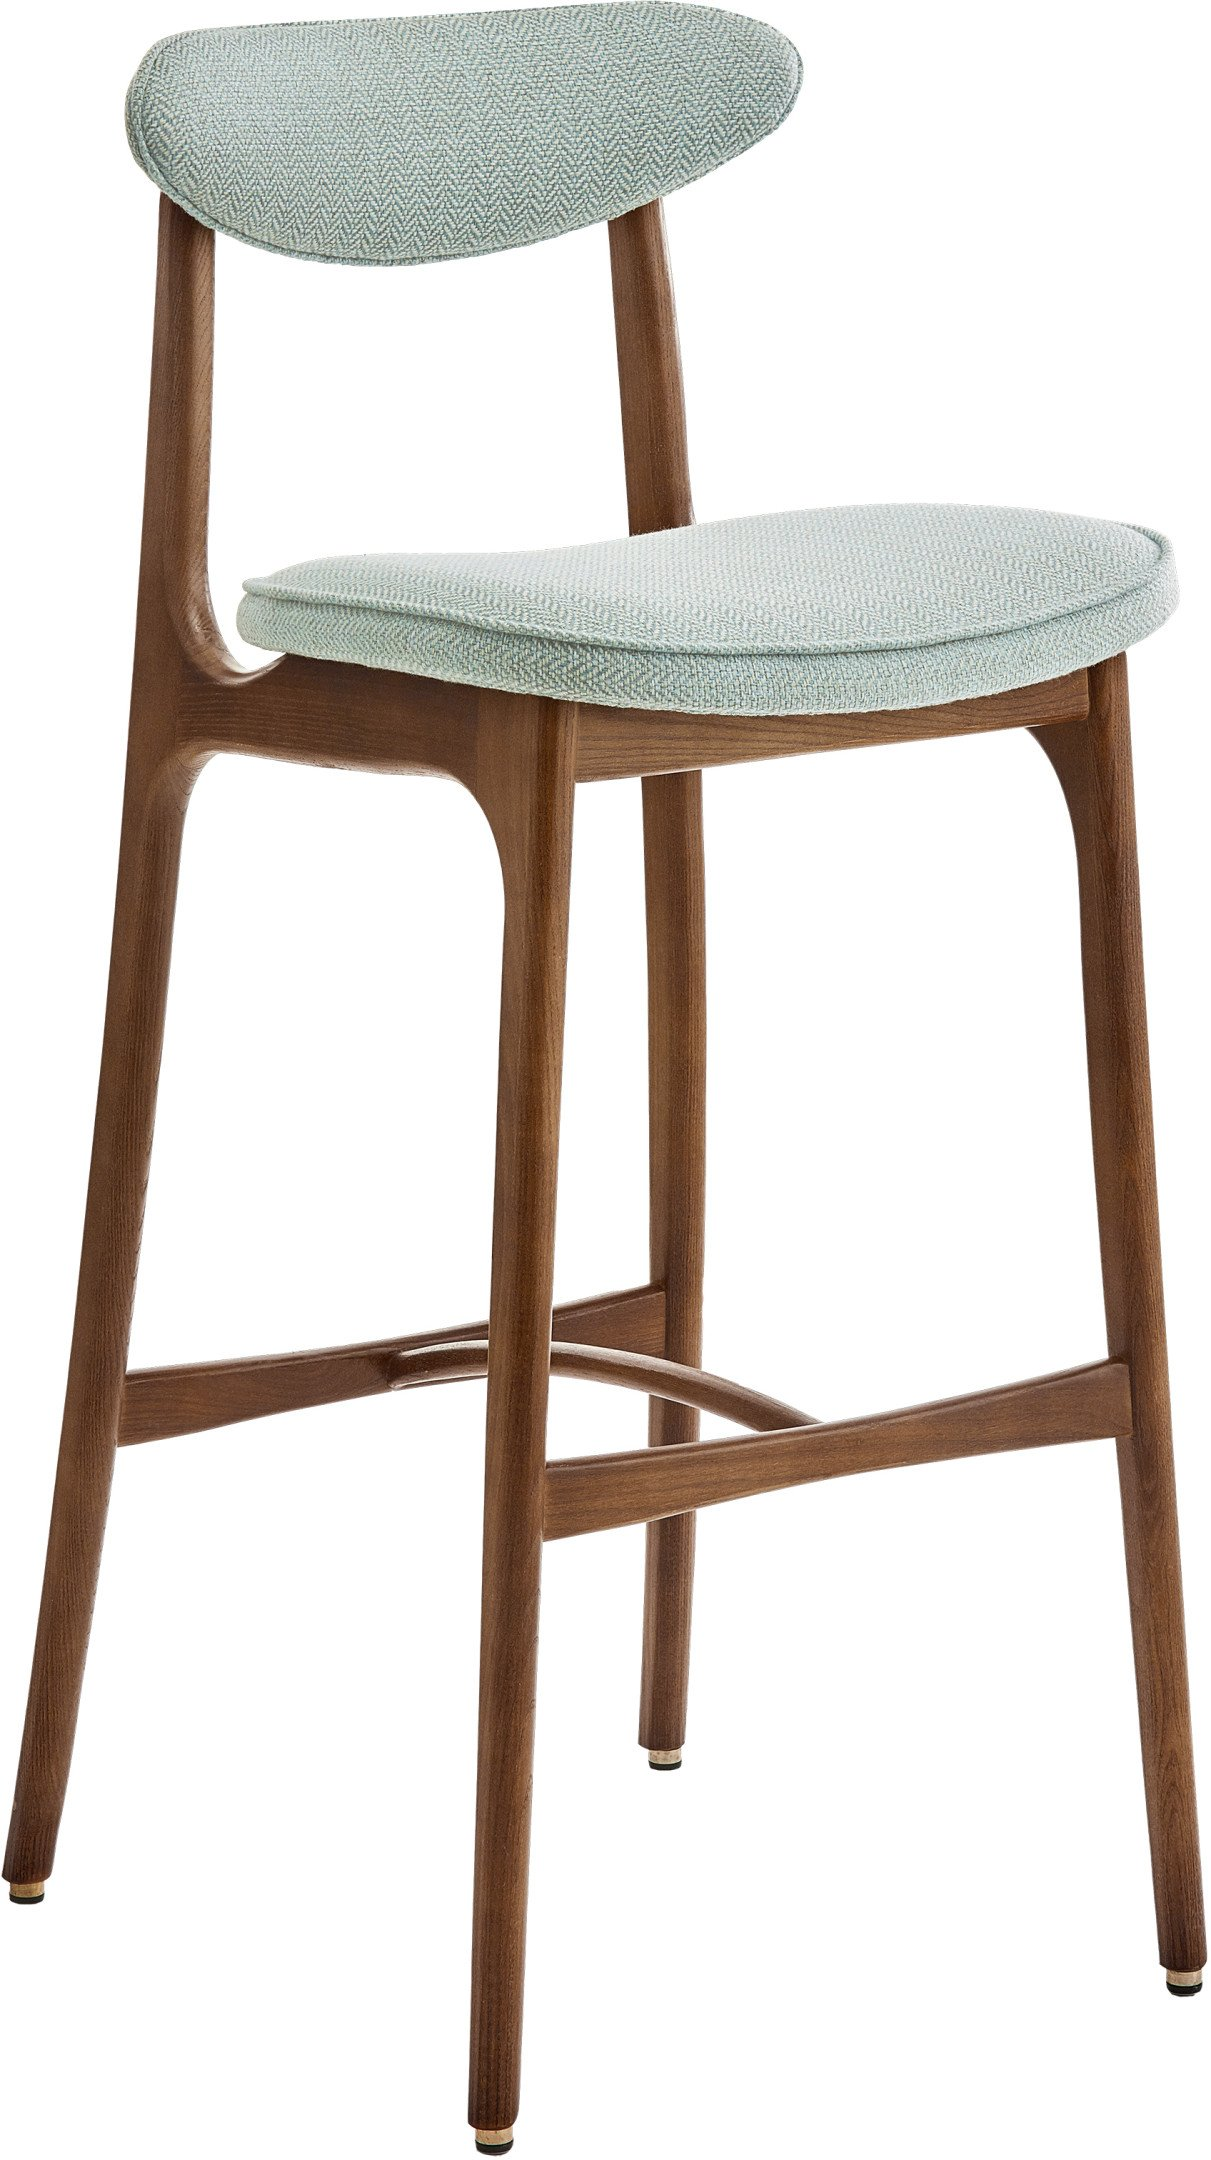 200-190 Bar Stool 75 Tweed Mentos, 366 Concept